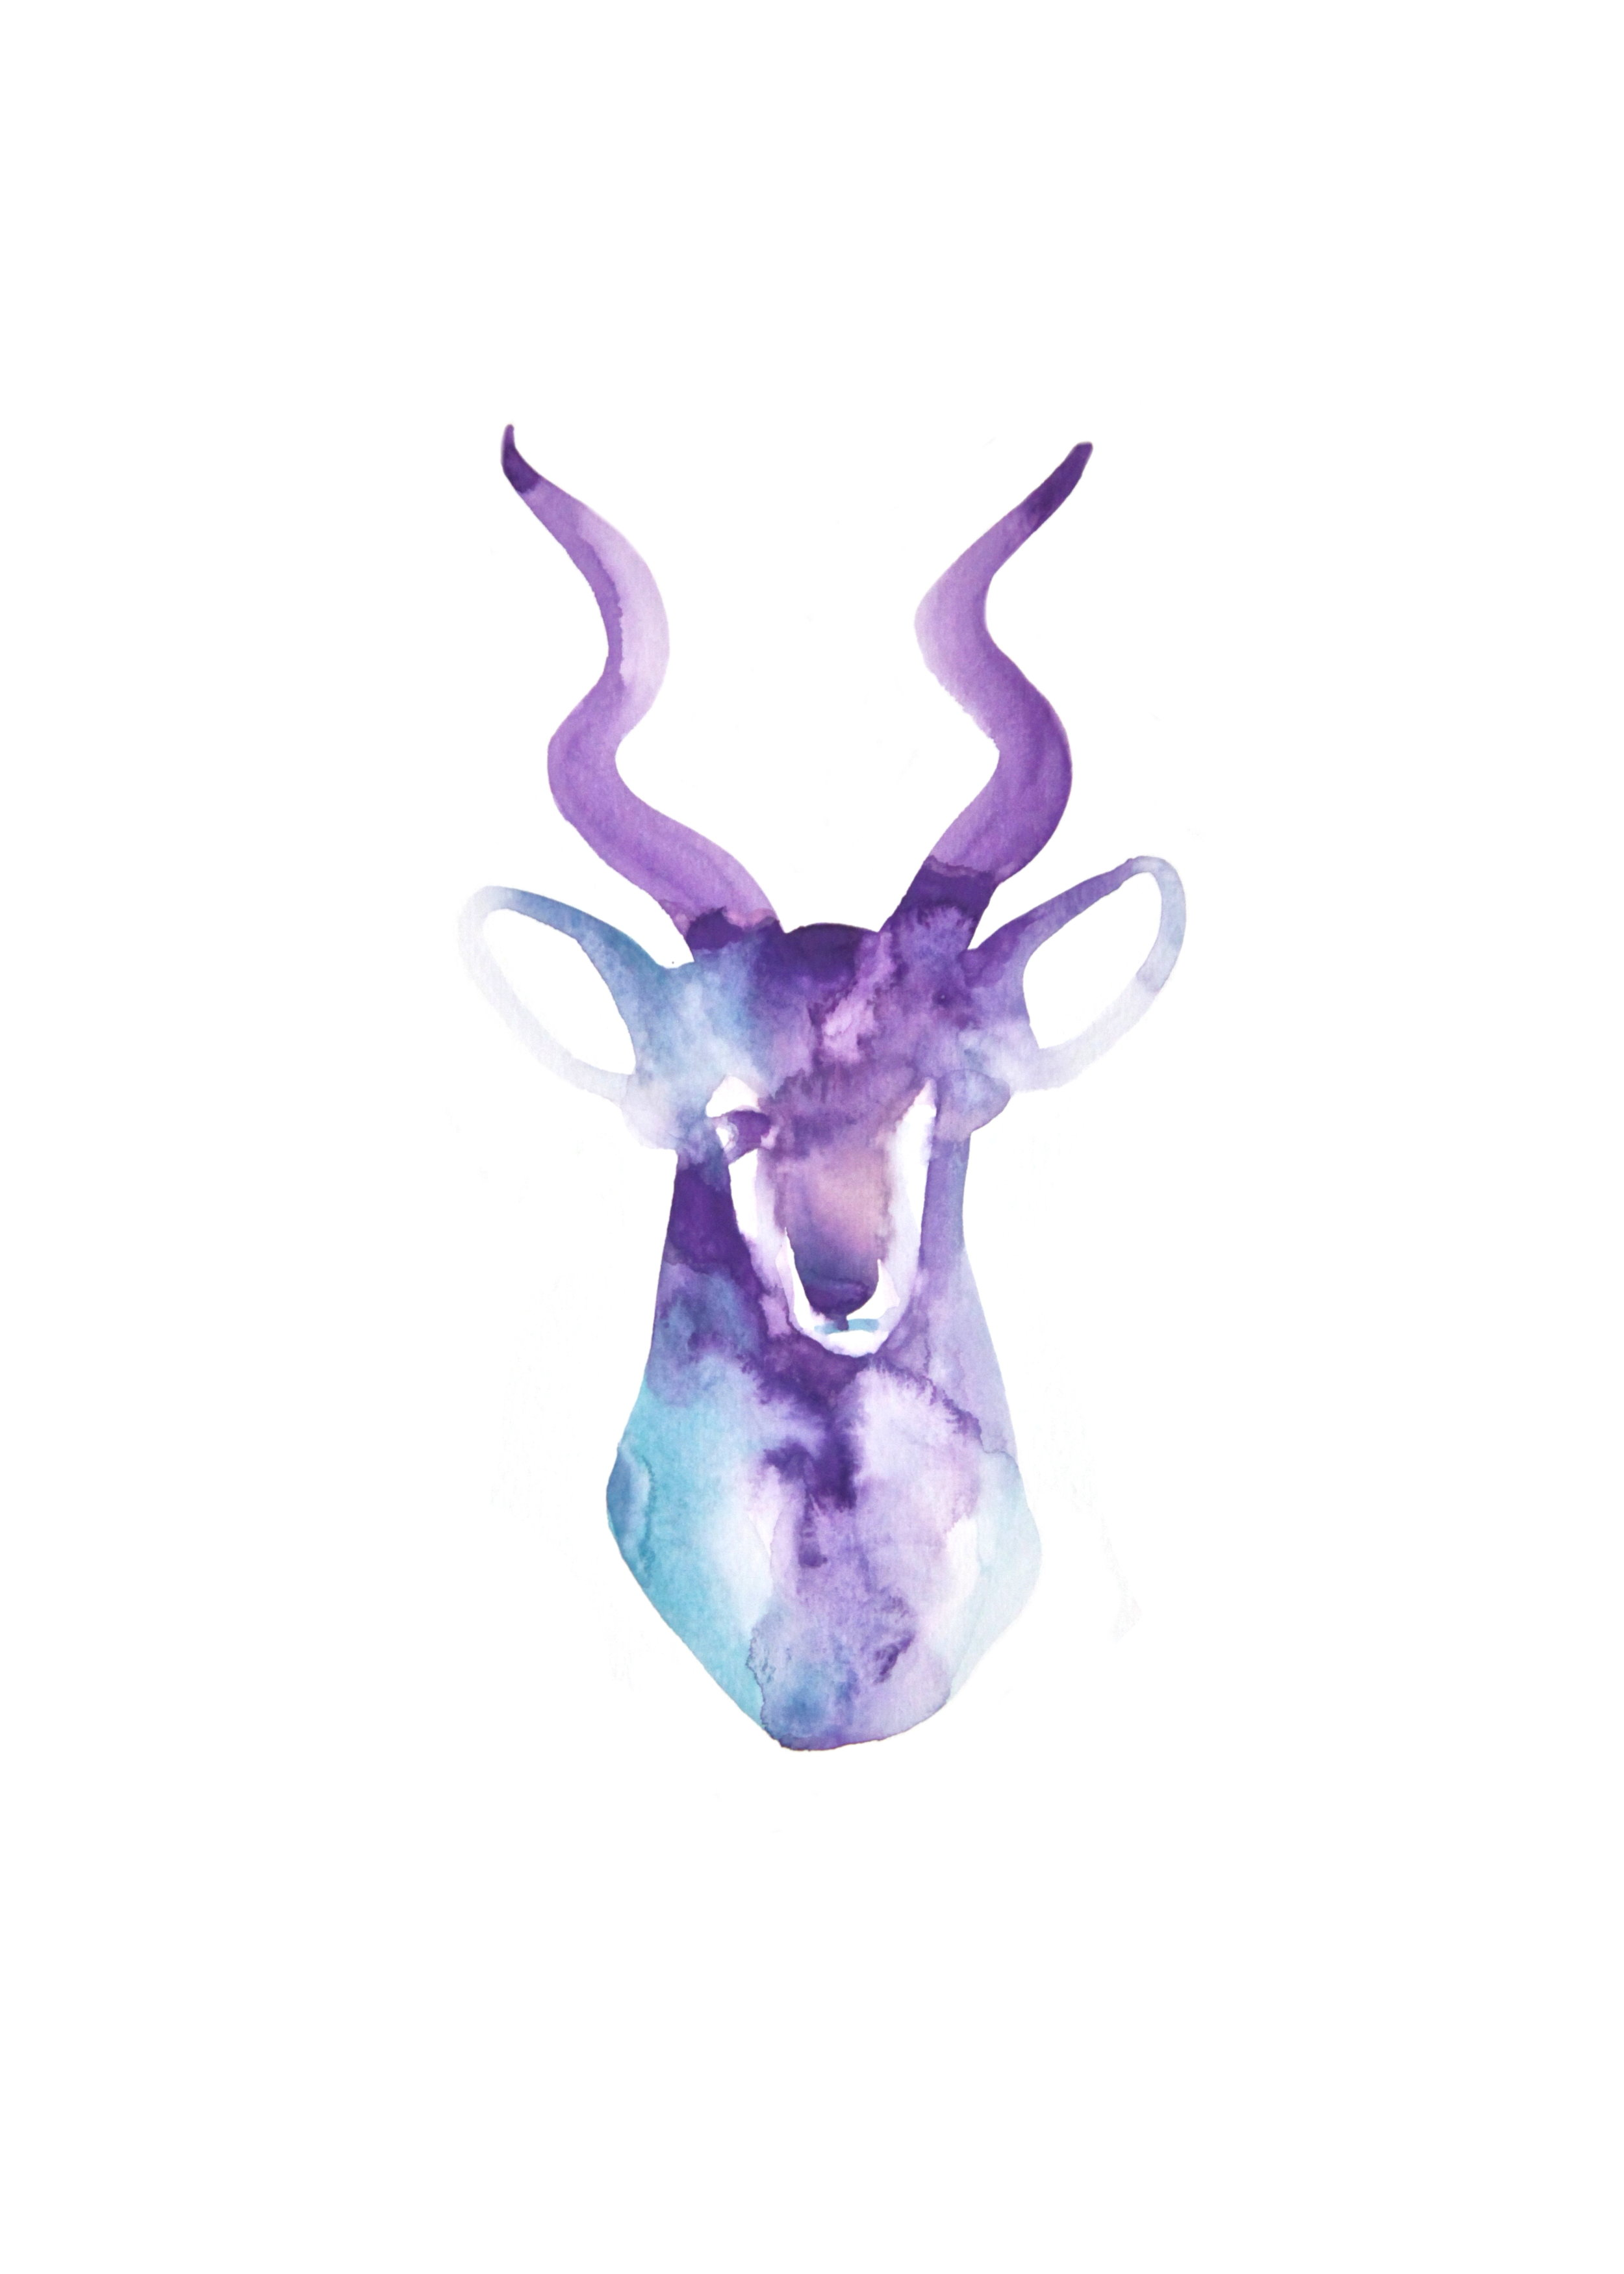 Tête violette-Cerf  , 2016,     watercolor on paper, 29,8x41cm, private collection